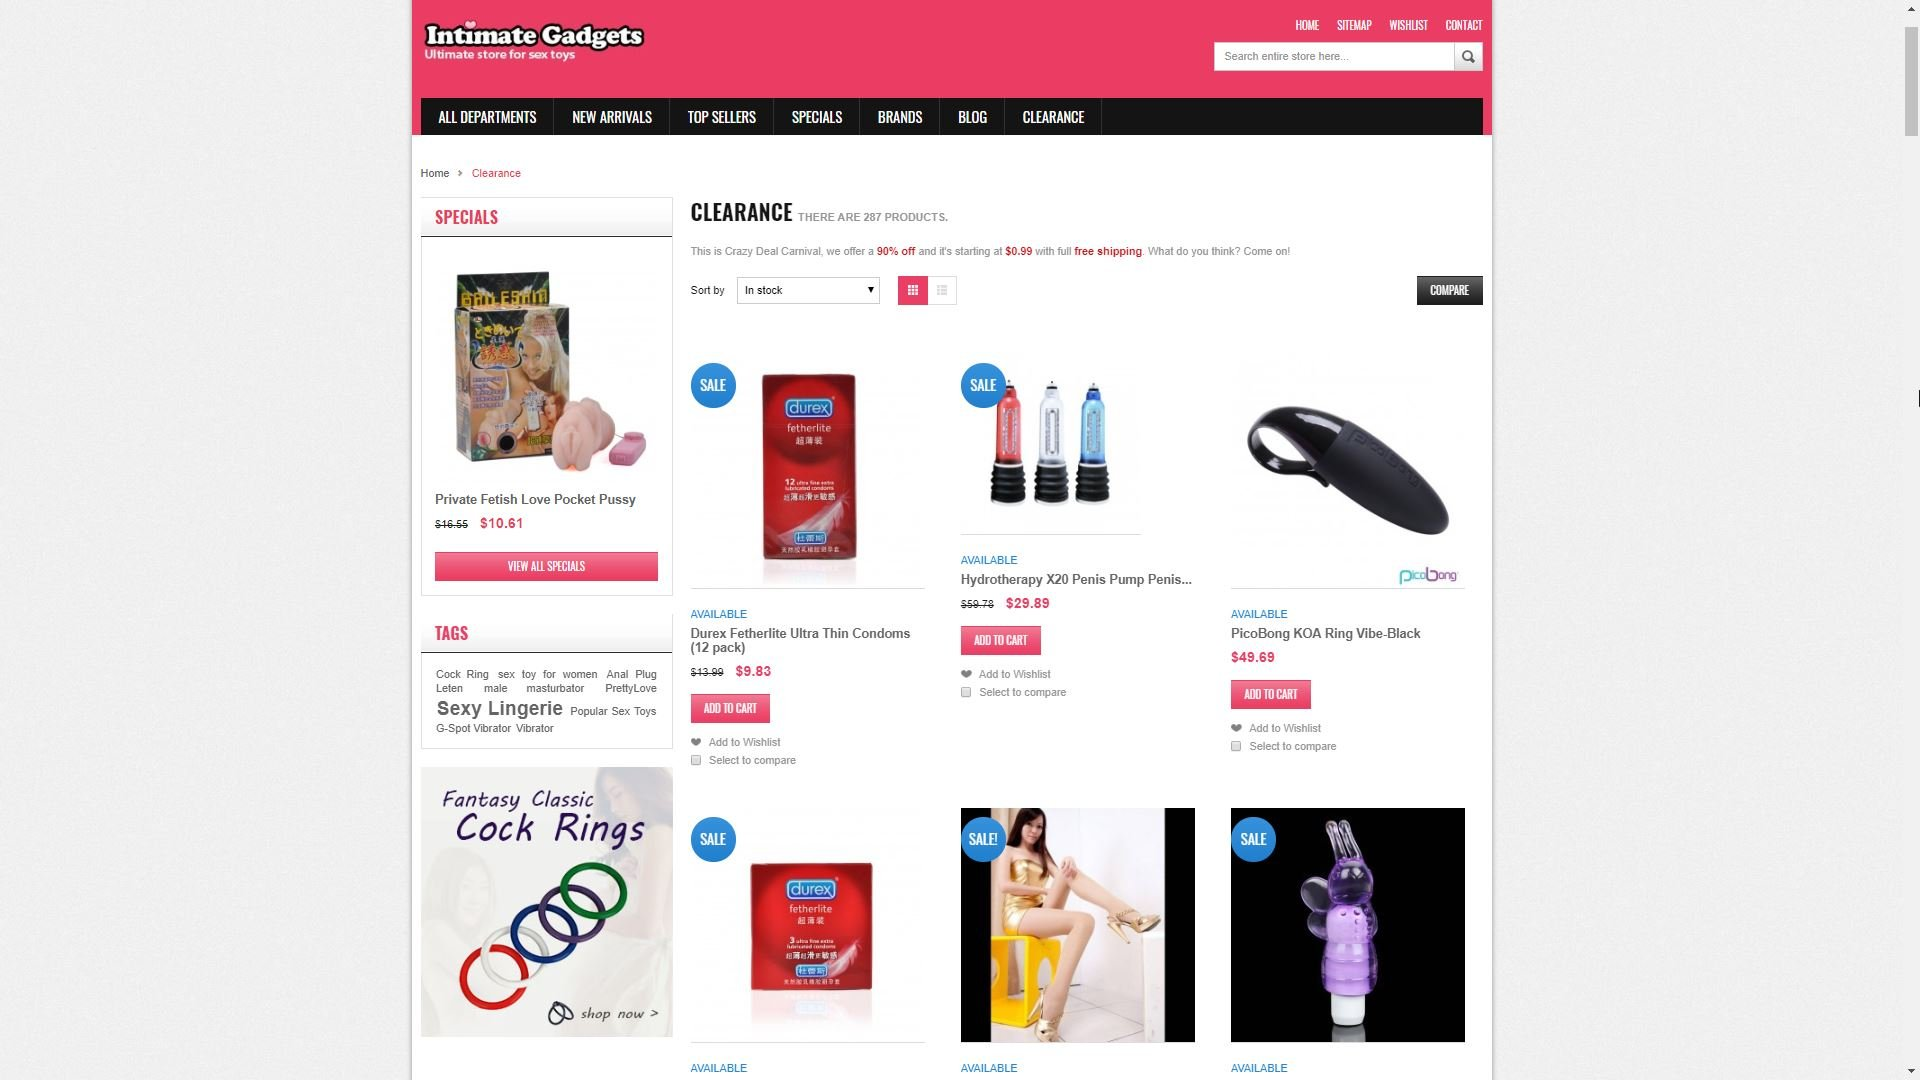 Intimate Gadgets Clearance